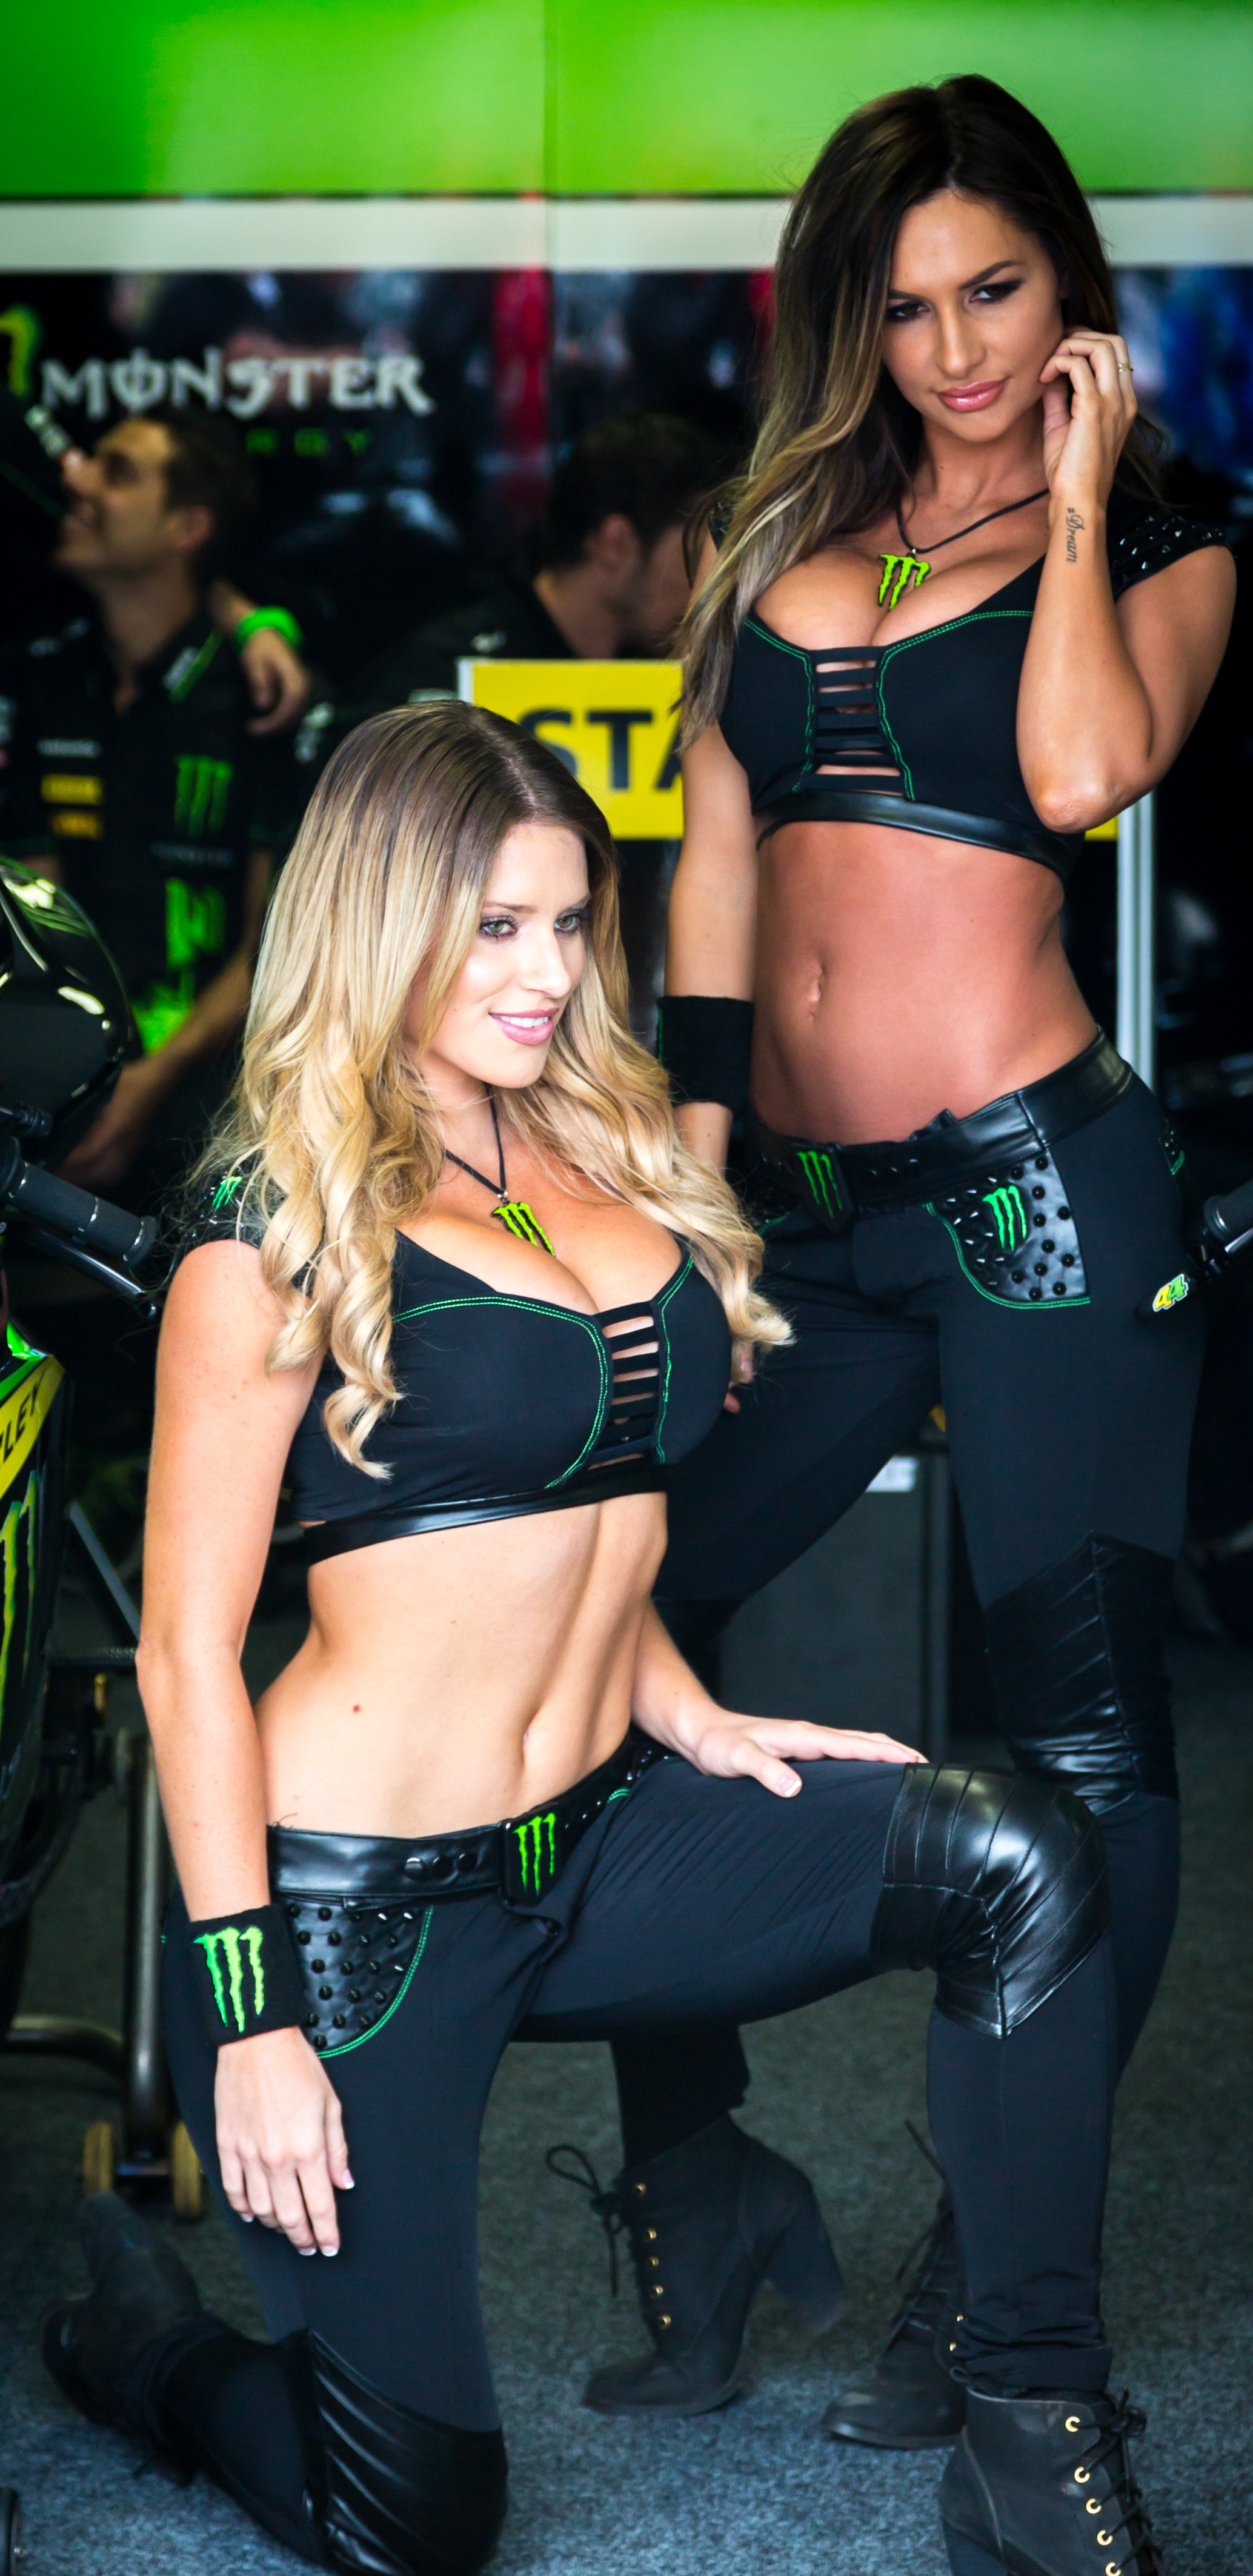 Monster Energy Drink MOTOGP models